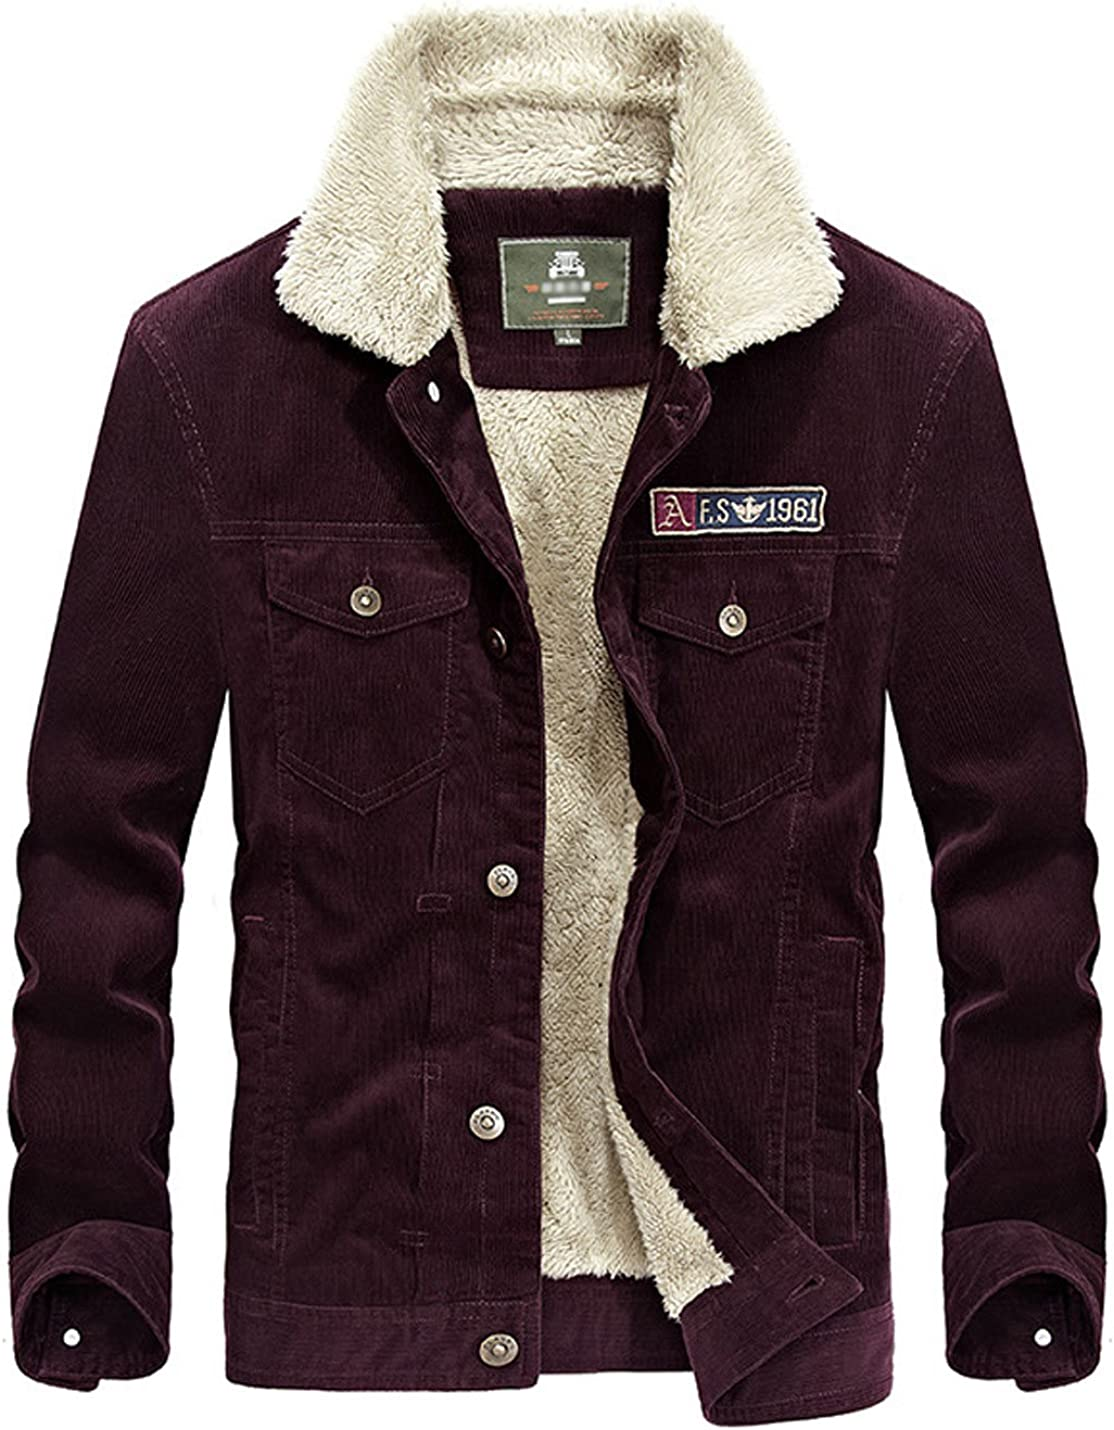 Yeokou Men's shipfree Vintage Slim Sherpa Corduroy Trucke Lined 67% OFF of fixed price Shearling